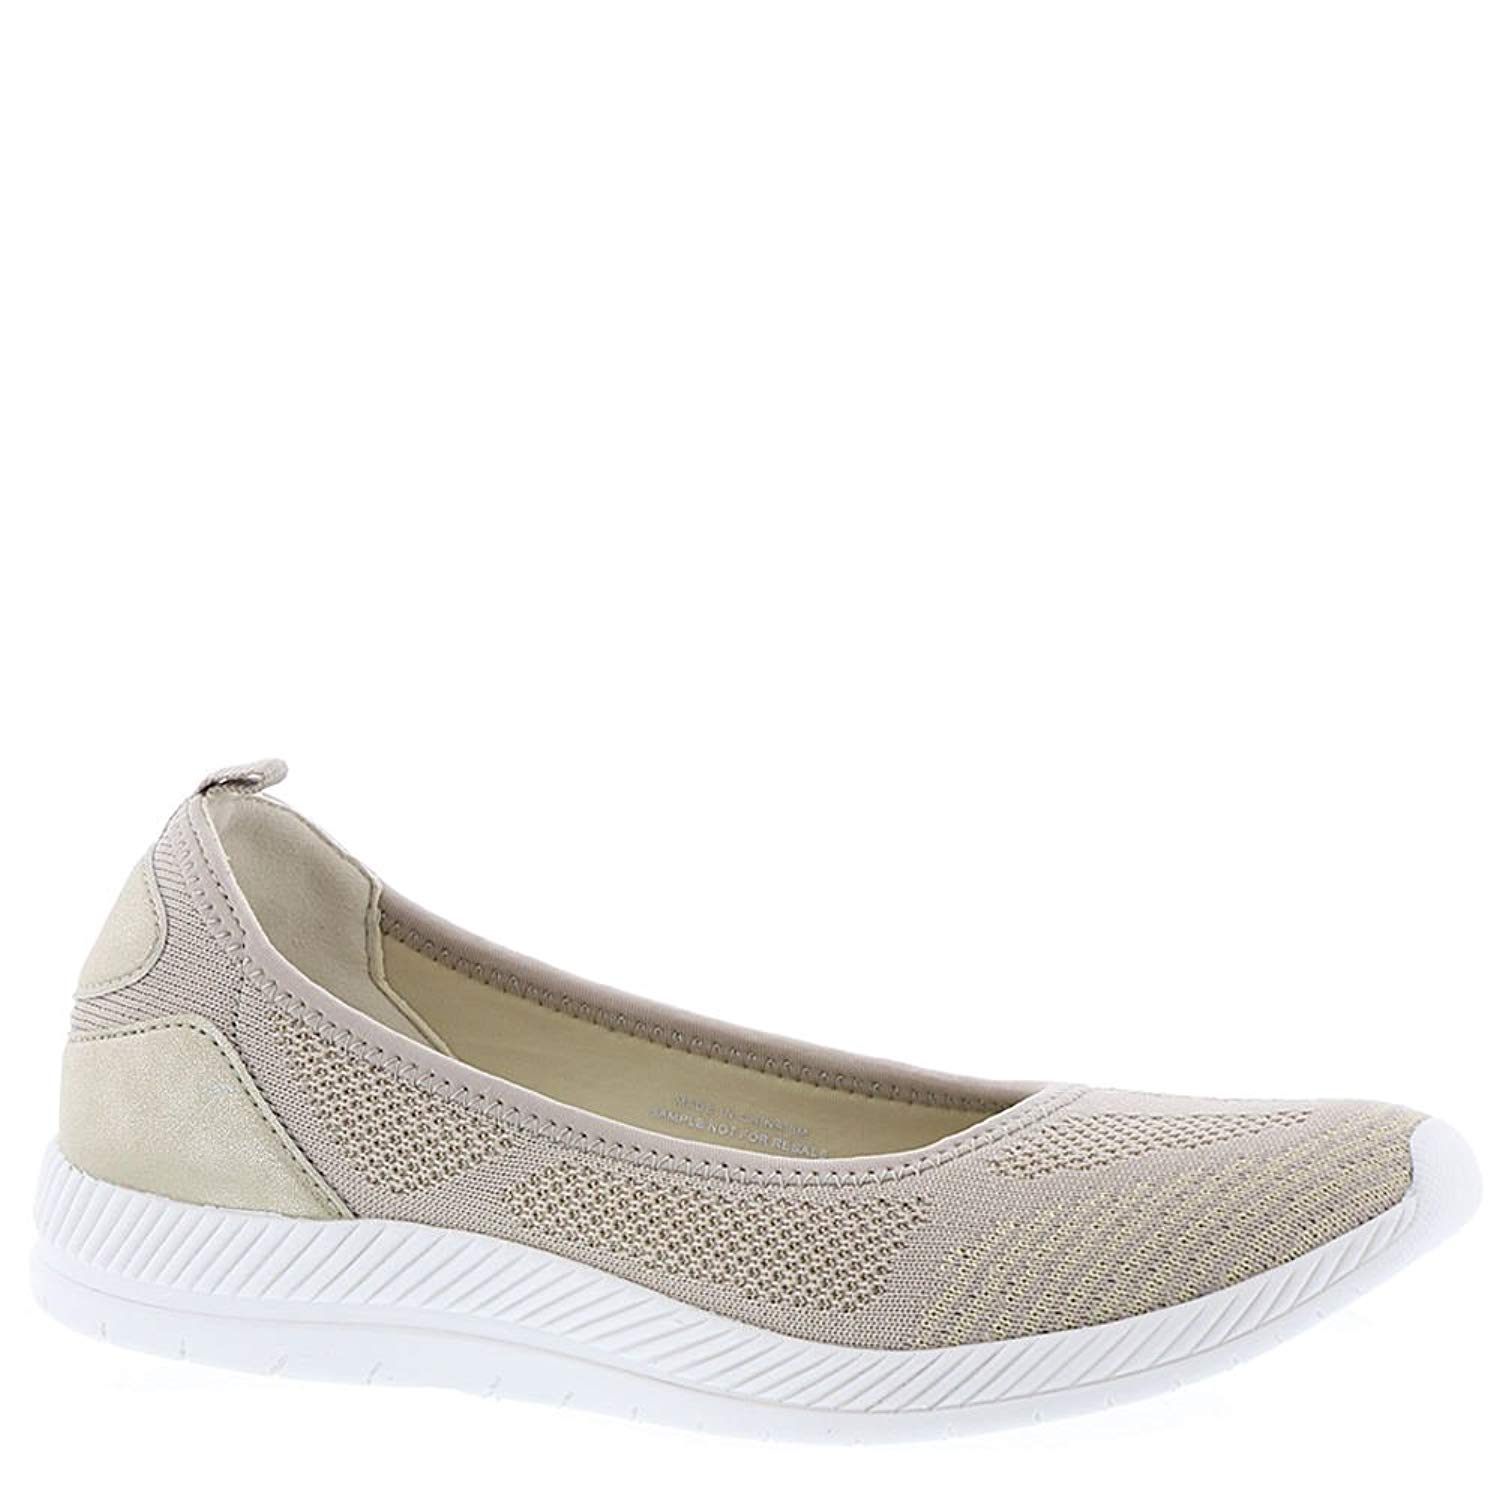 Flats Closed Geinee Womens Easy Toe Spirit Slide zPSCnxRw